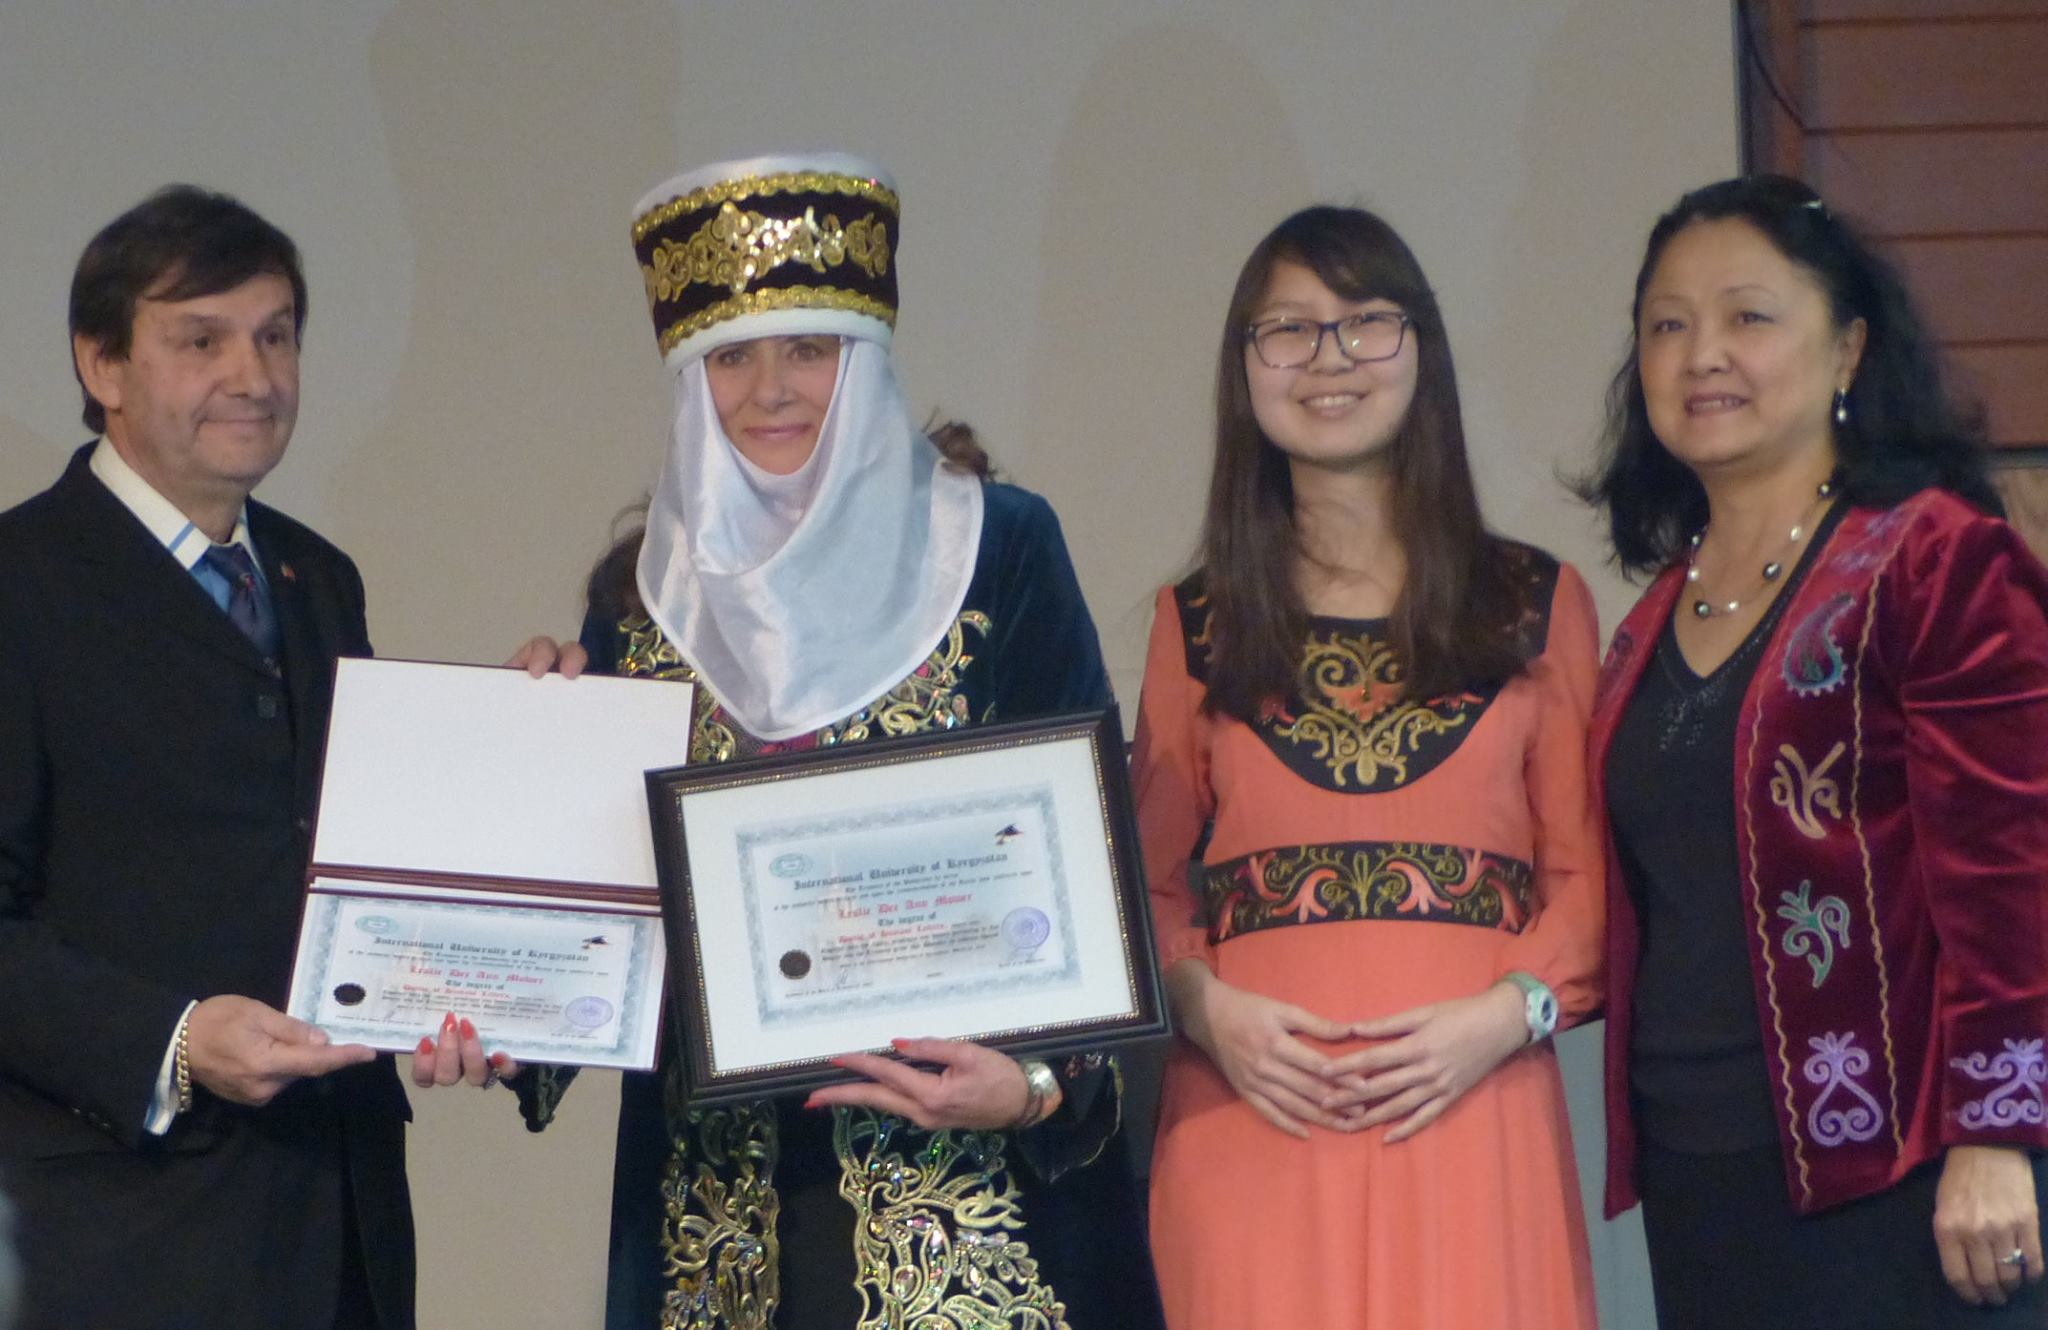 Leslie Dee Ann Mower receives an Honorary Doctorate of Humane Letters from Kyrgyz International University.